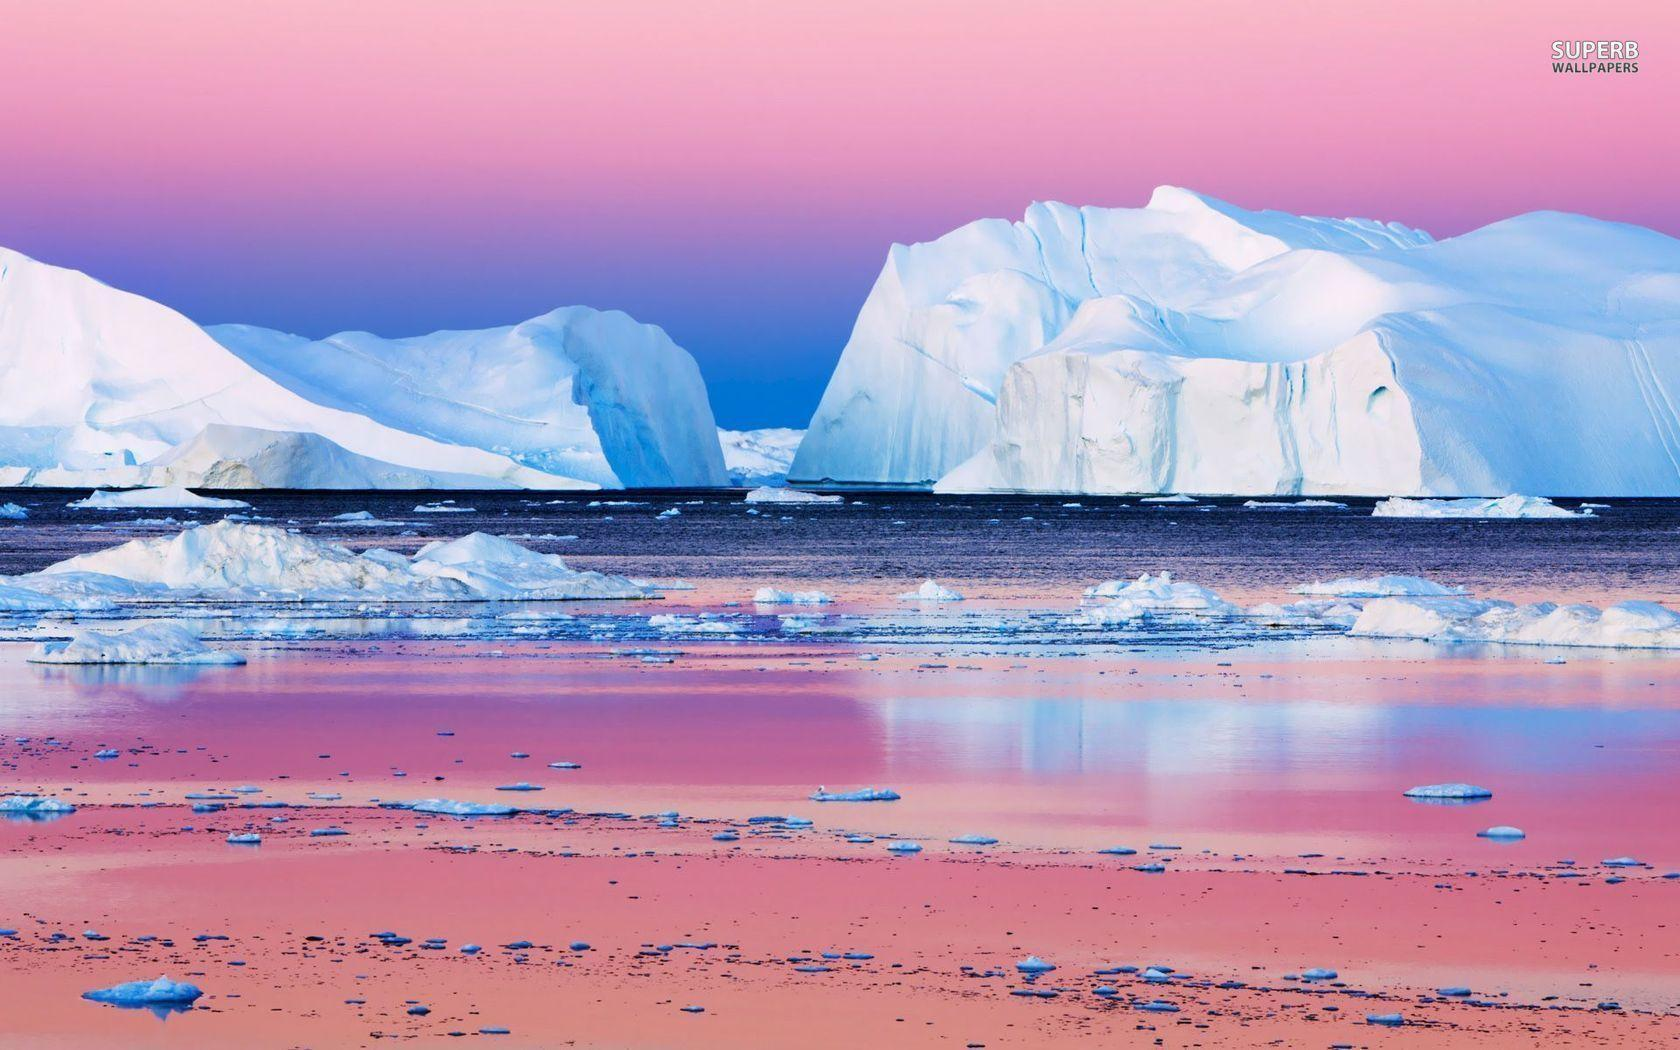 Icebergs in Disko Bay, Greenland wallpapers